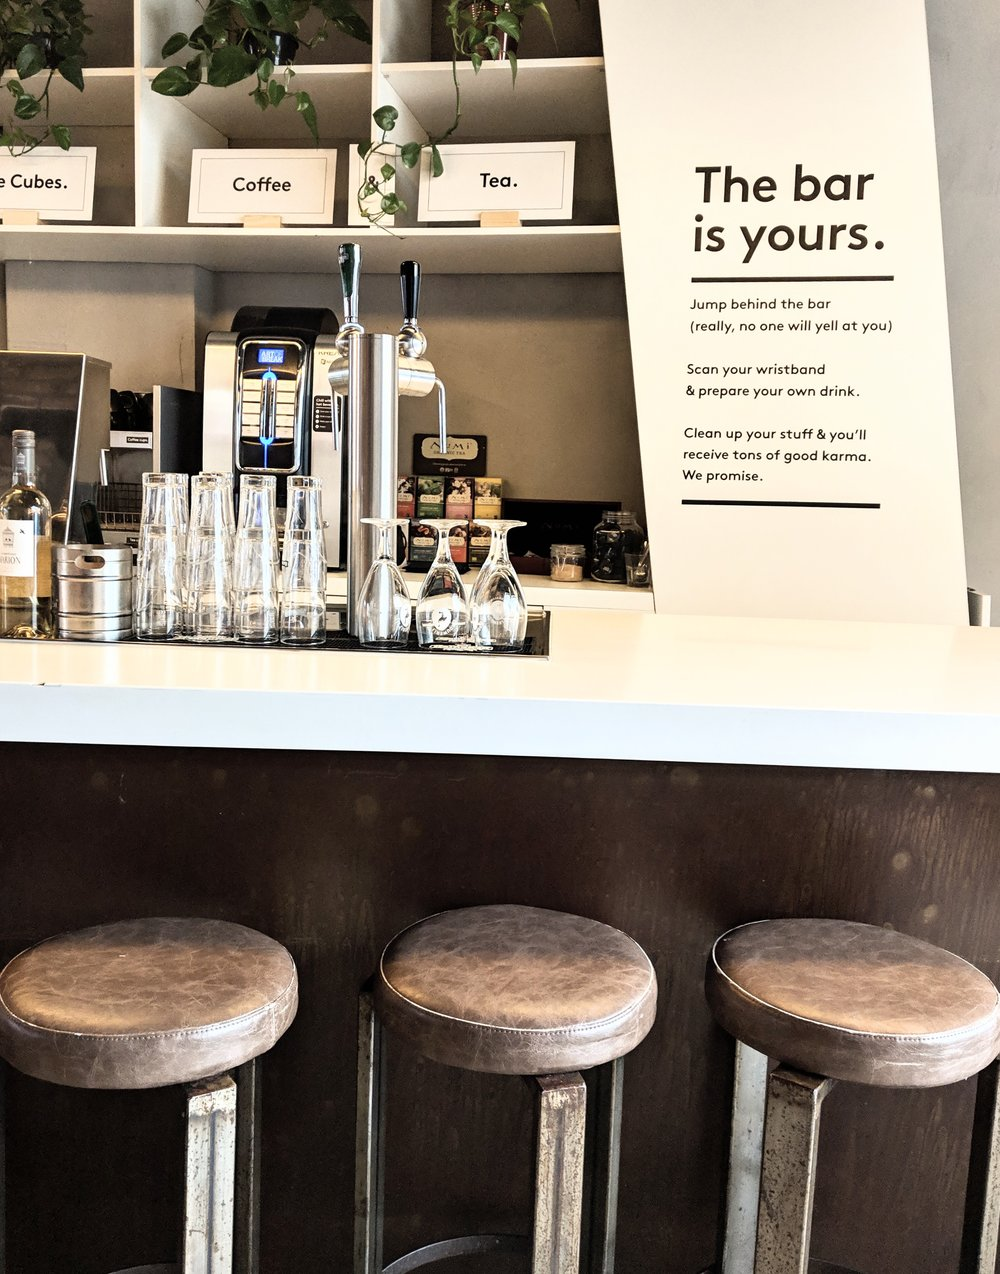 City Hub - Help yourself bar - Image by peastyle